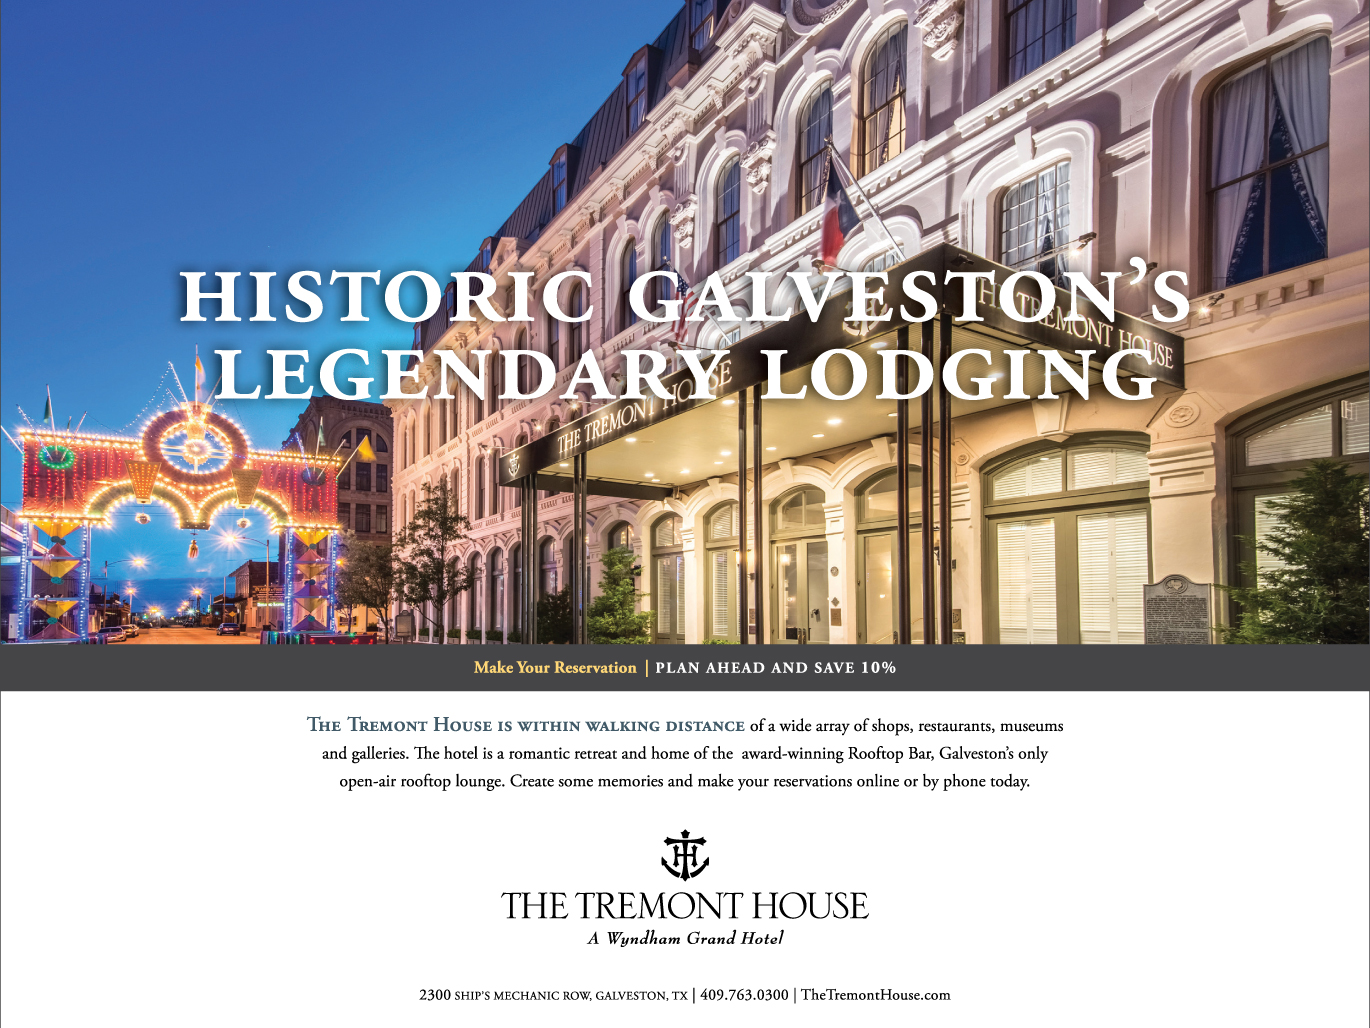 Tremont-House-Lodging-Galveston-TX